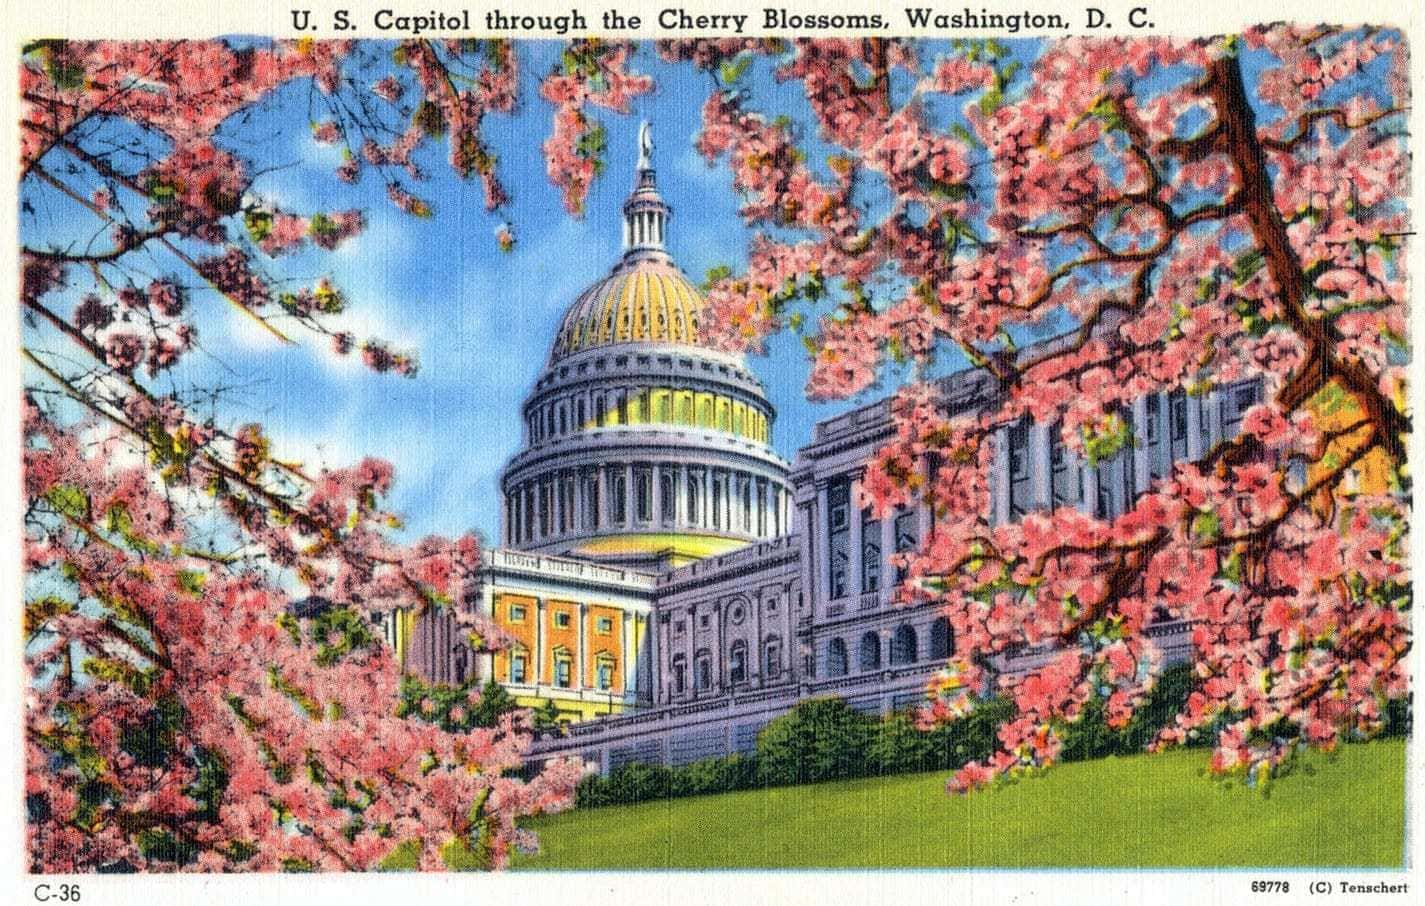 U. S. Capitol through the Cherry Blossoms, Washington, DC vintage postcard